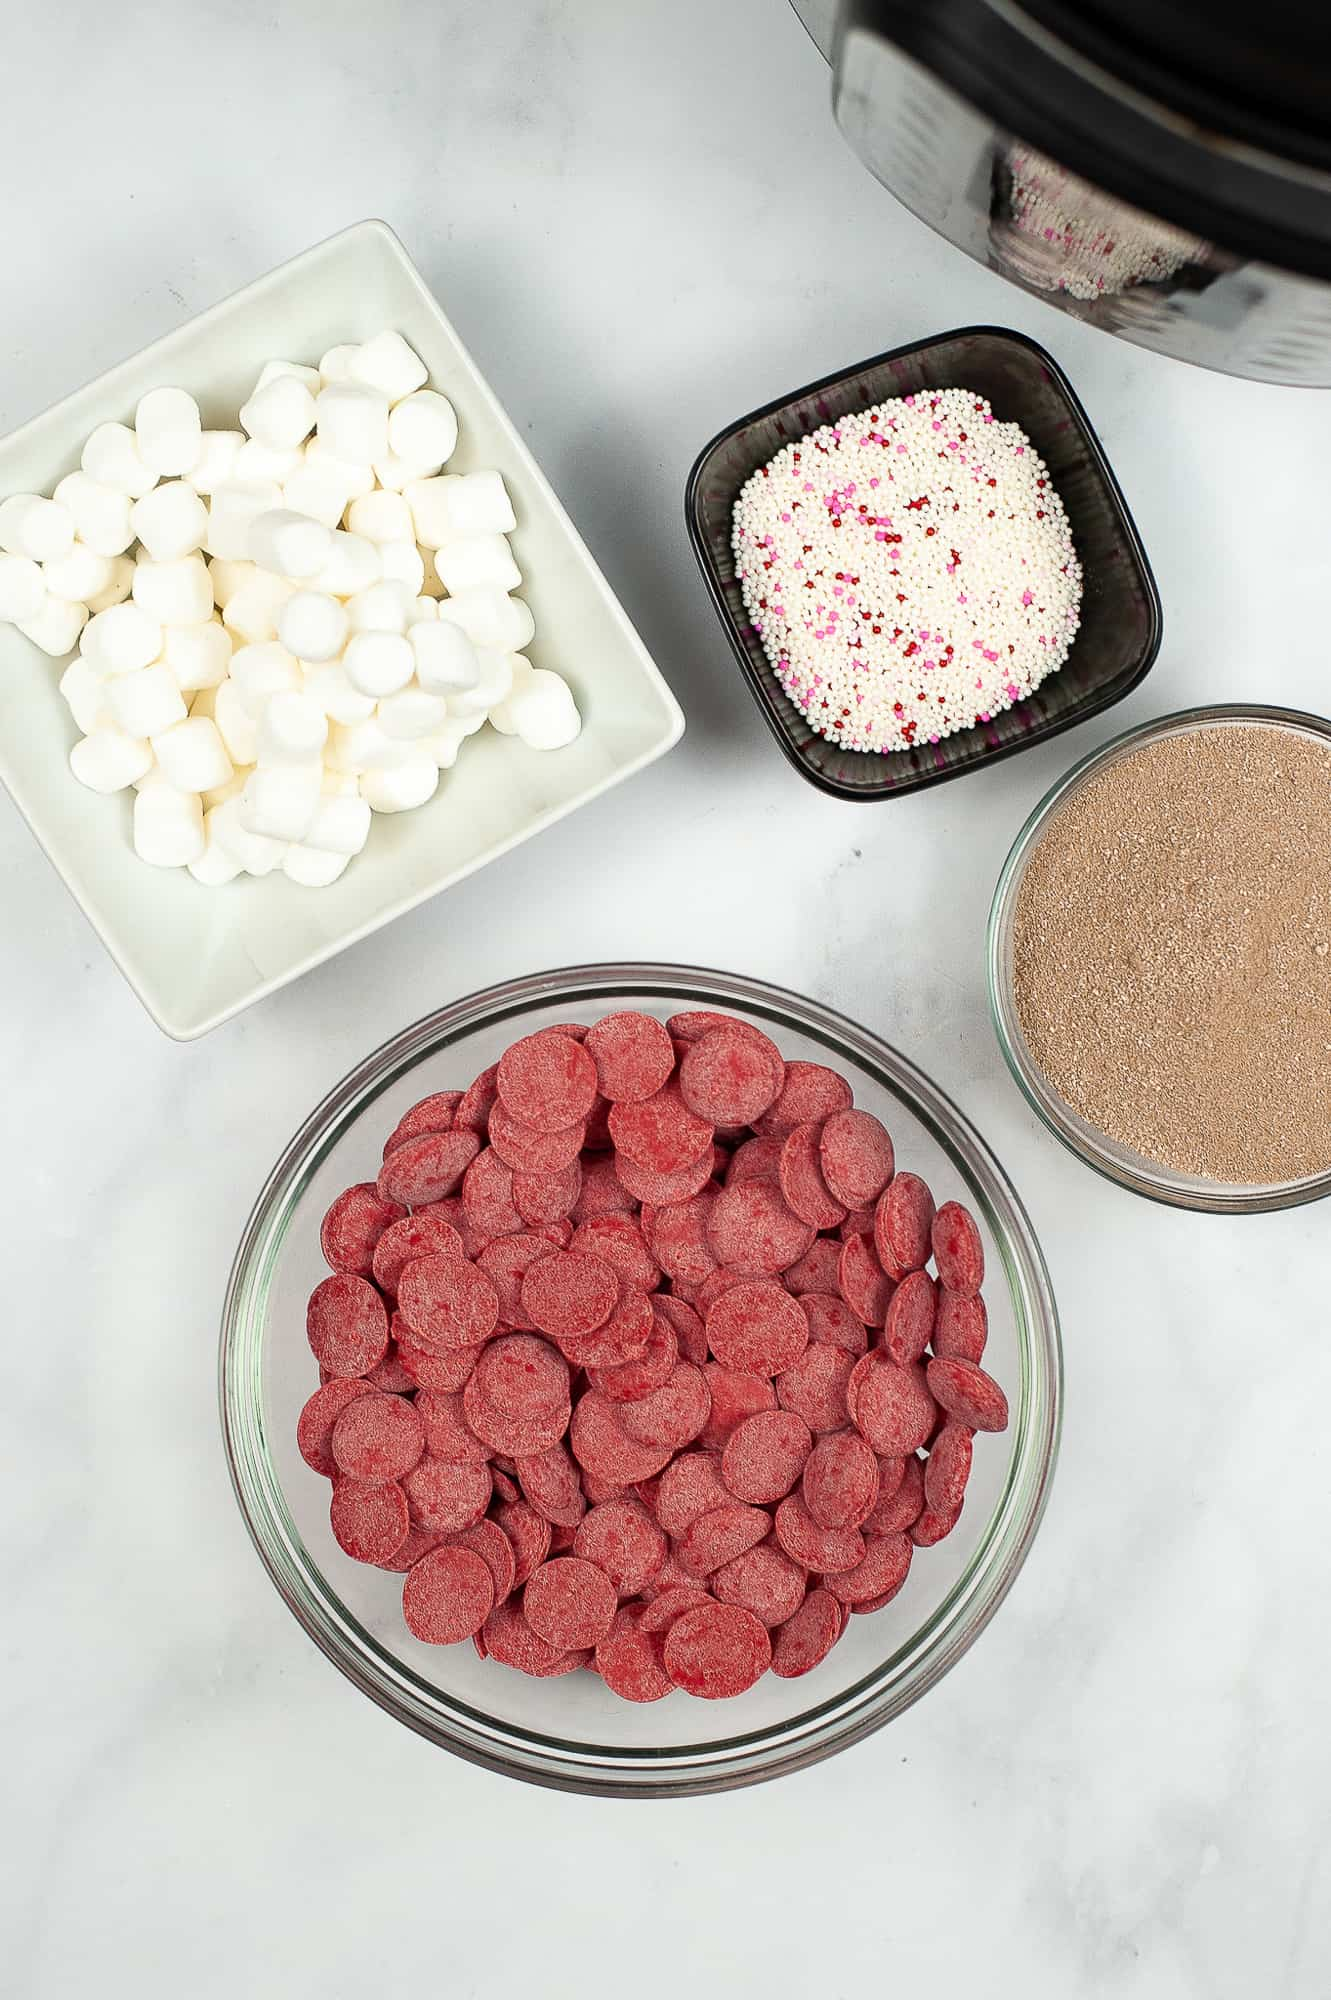 ingredients for hot chocolate bombs in ingredient bowls on counter top